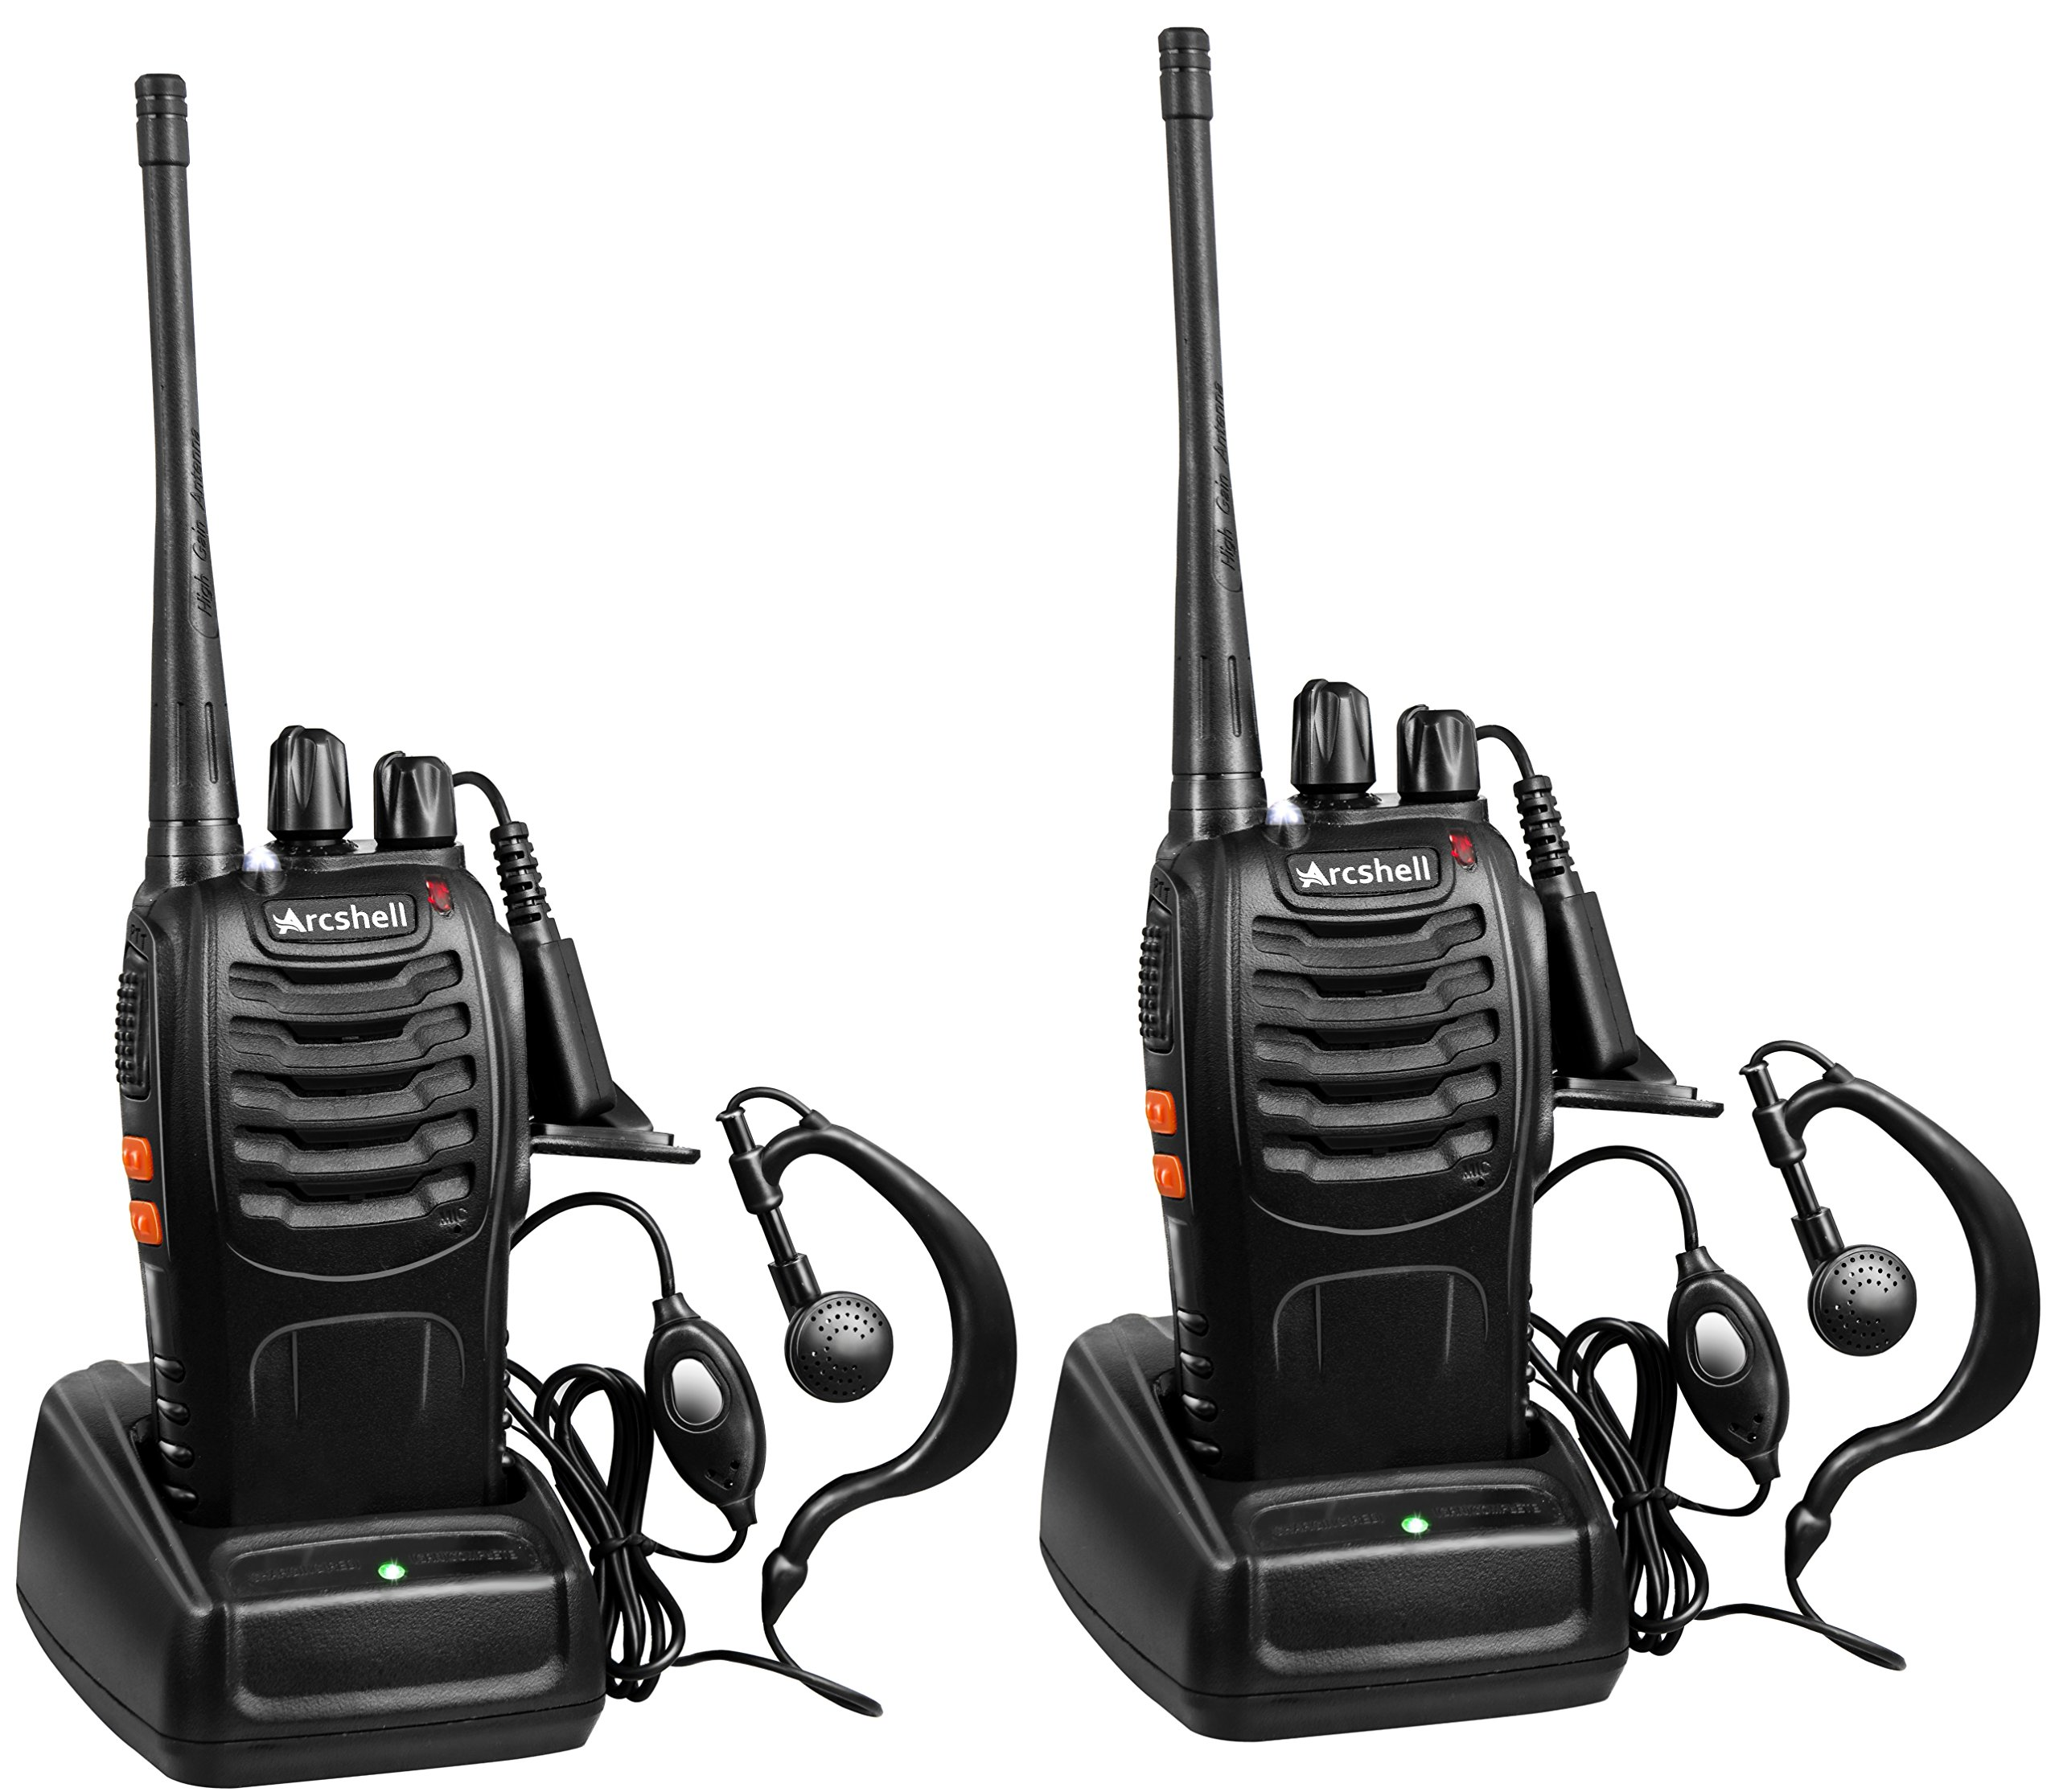 Arcshell Rechargeable Long Range Two-Way Radios with Earpiece 2 Pack UHF 400-470Mhz Walkie Talkies Li-ion Battery and Charger Included by Arcshell